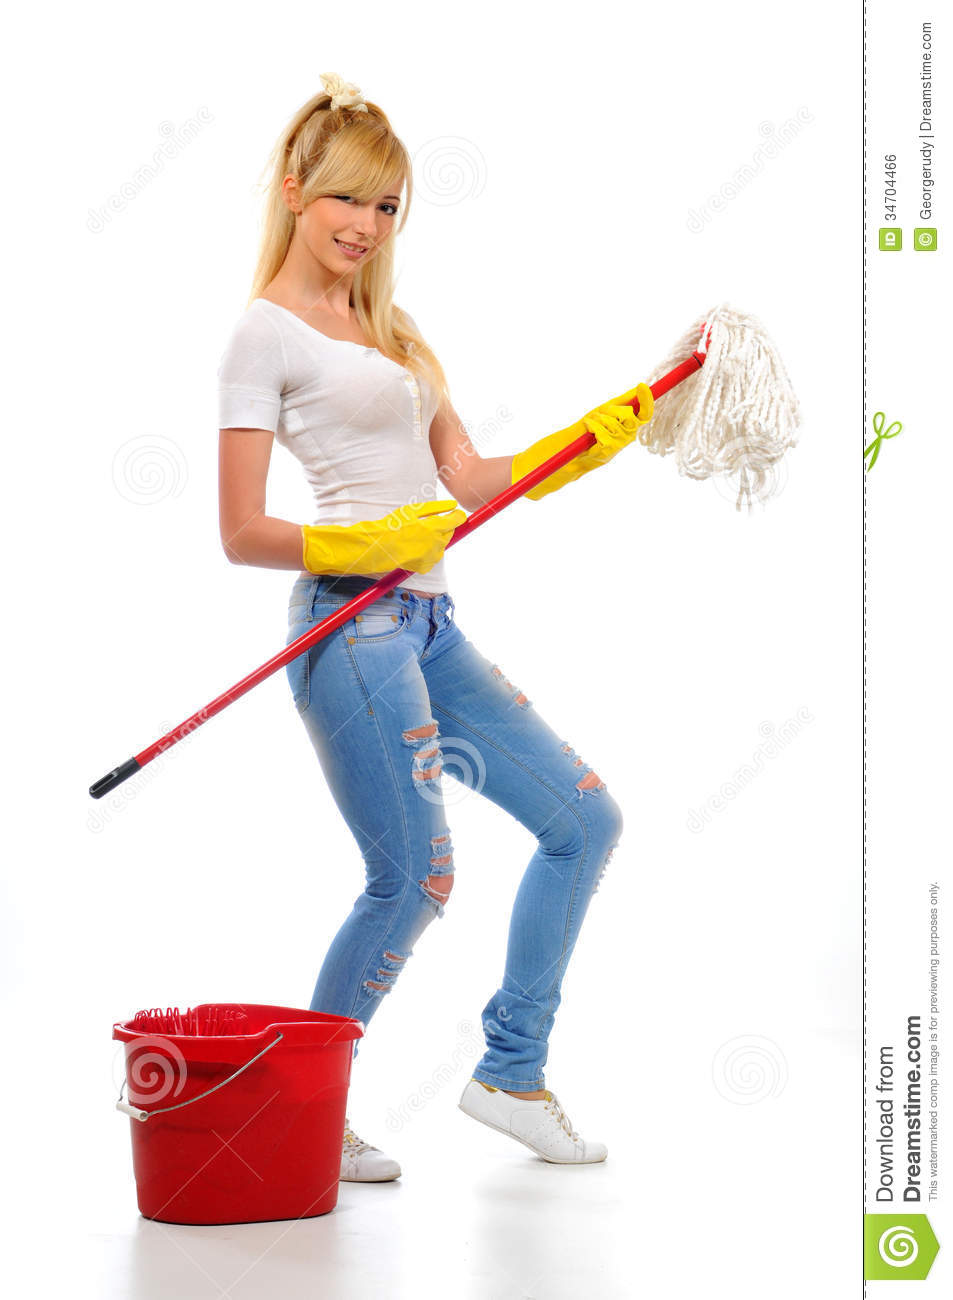 Cleaning Royalty Free Stock Image Image 34704466